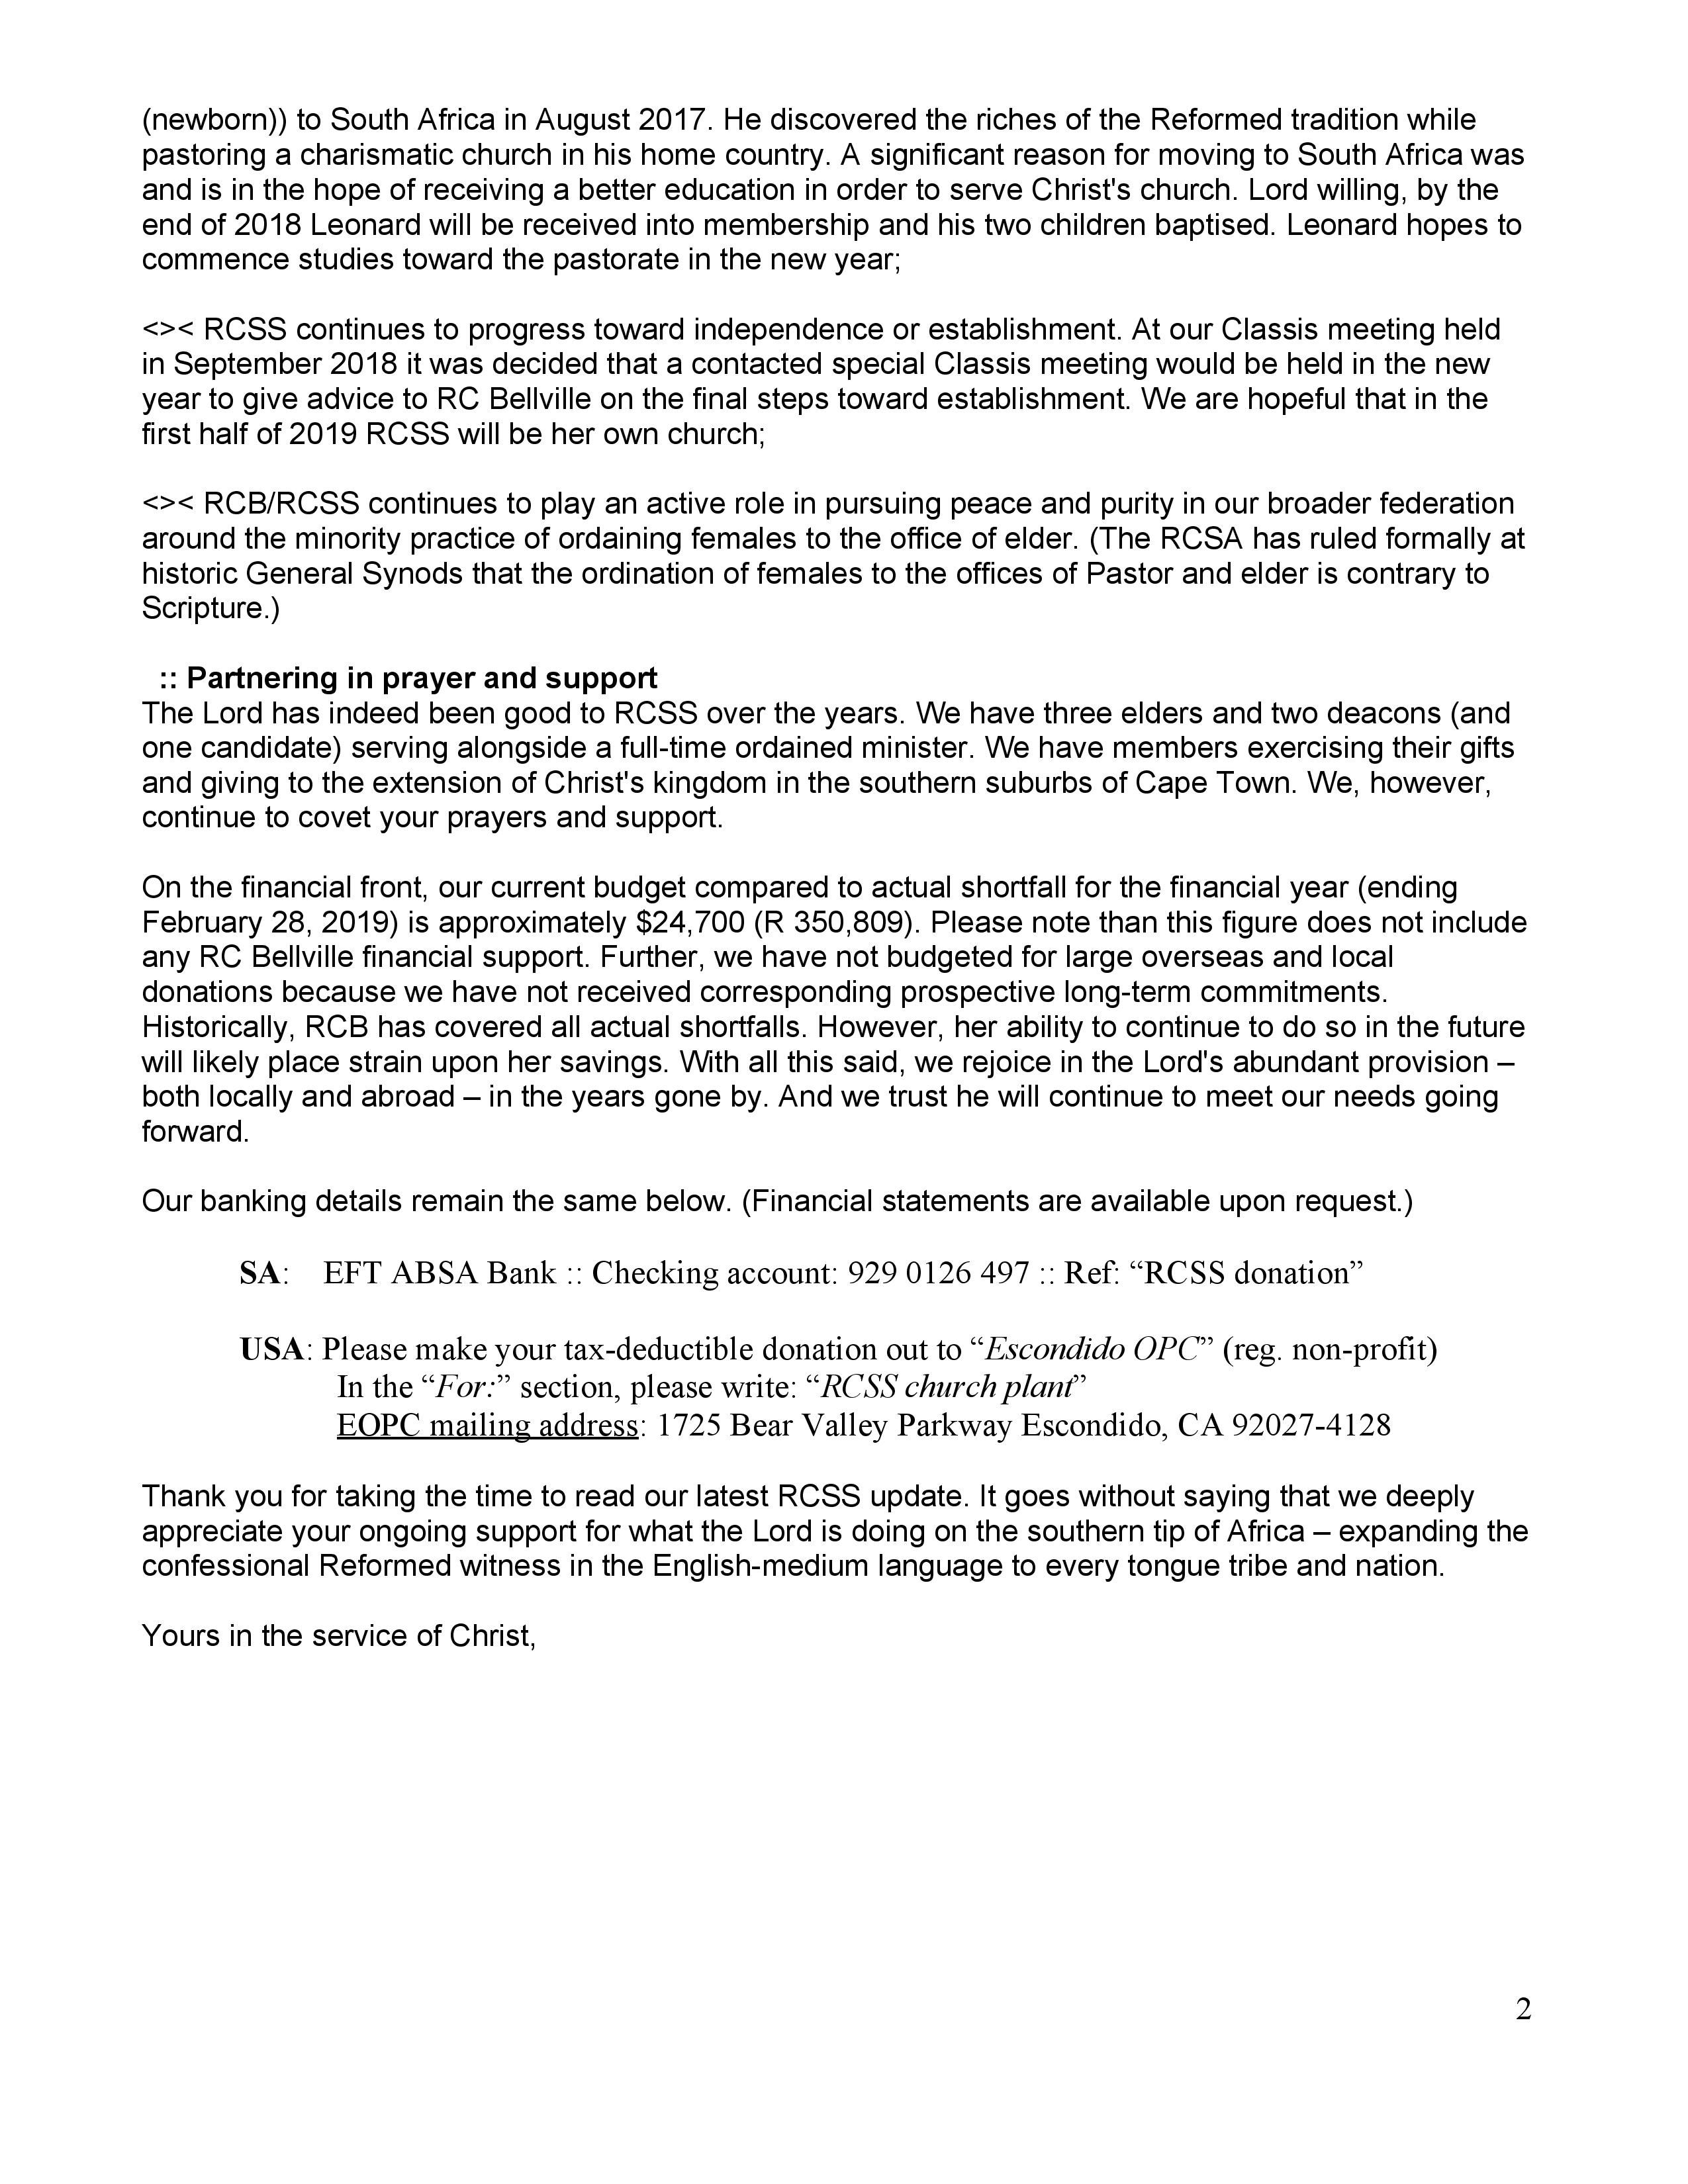 RCSS update letter (Nov 2018)-page-002